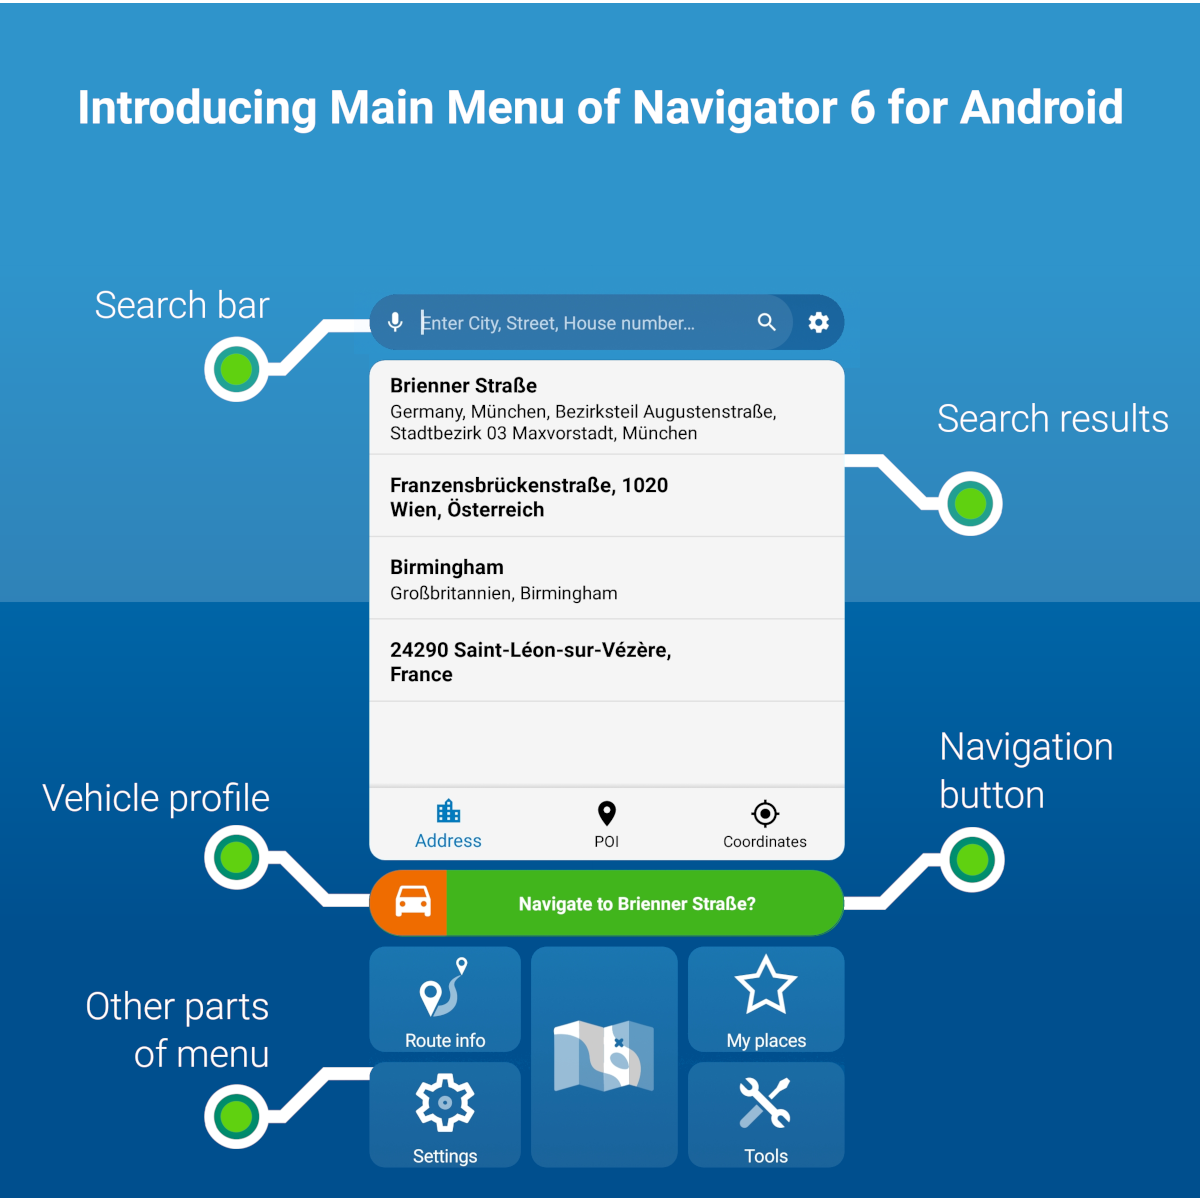 Introducing parts of the Main Menu of Navigator 6 for Android